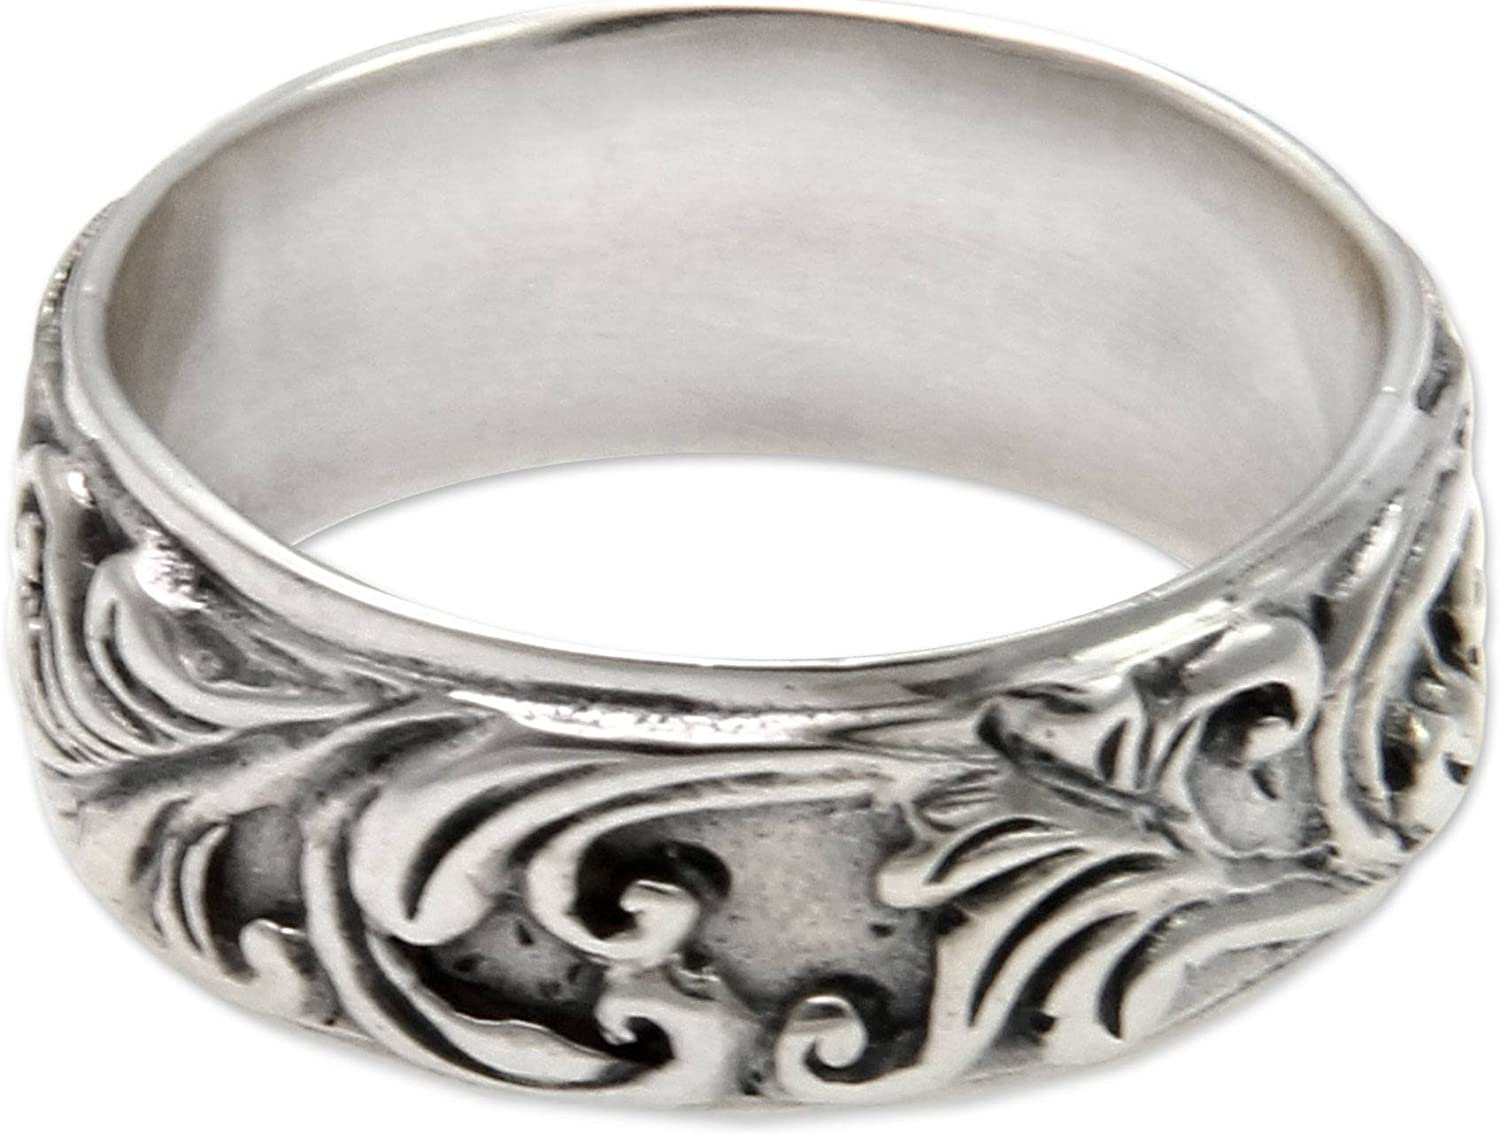 NOVICA .925 Sterling Silver Leaf and Tree Band Ring, Flourishing Foliage'